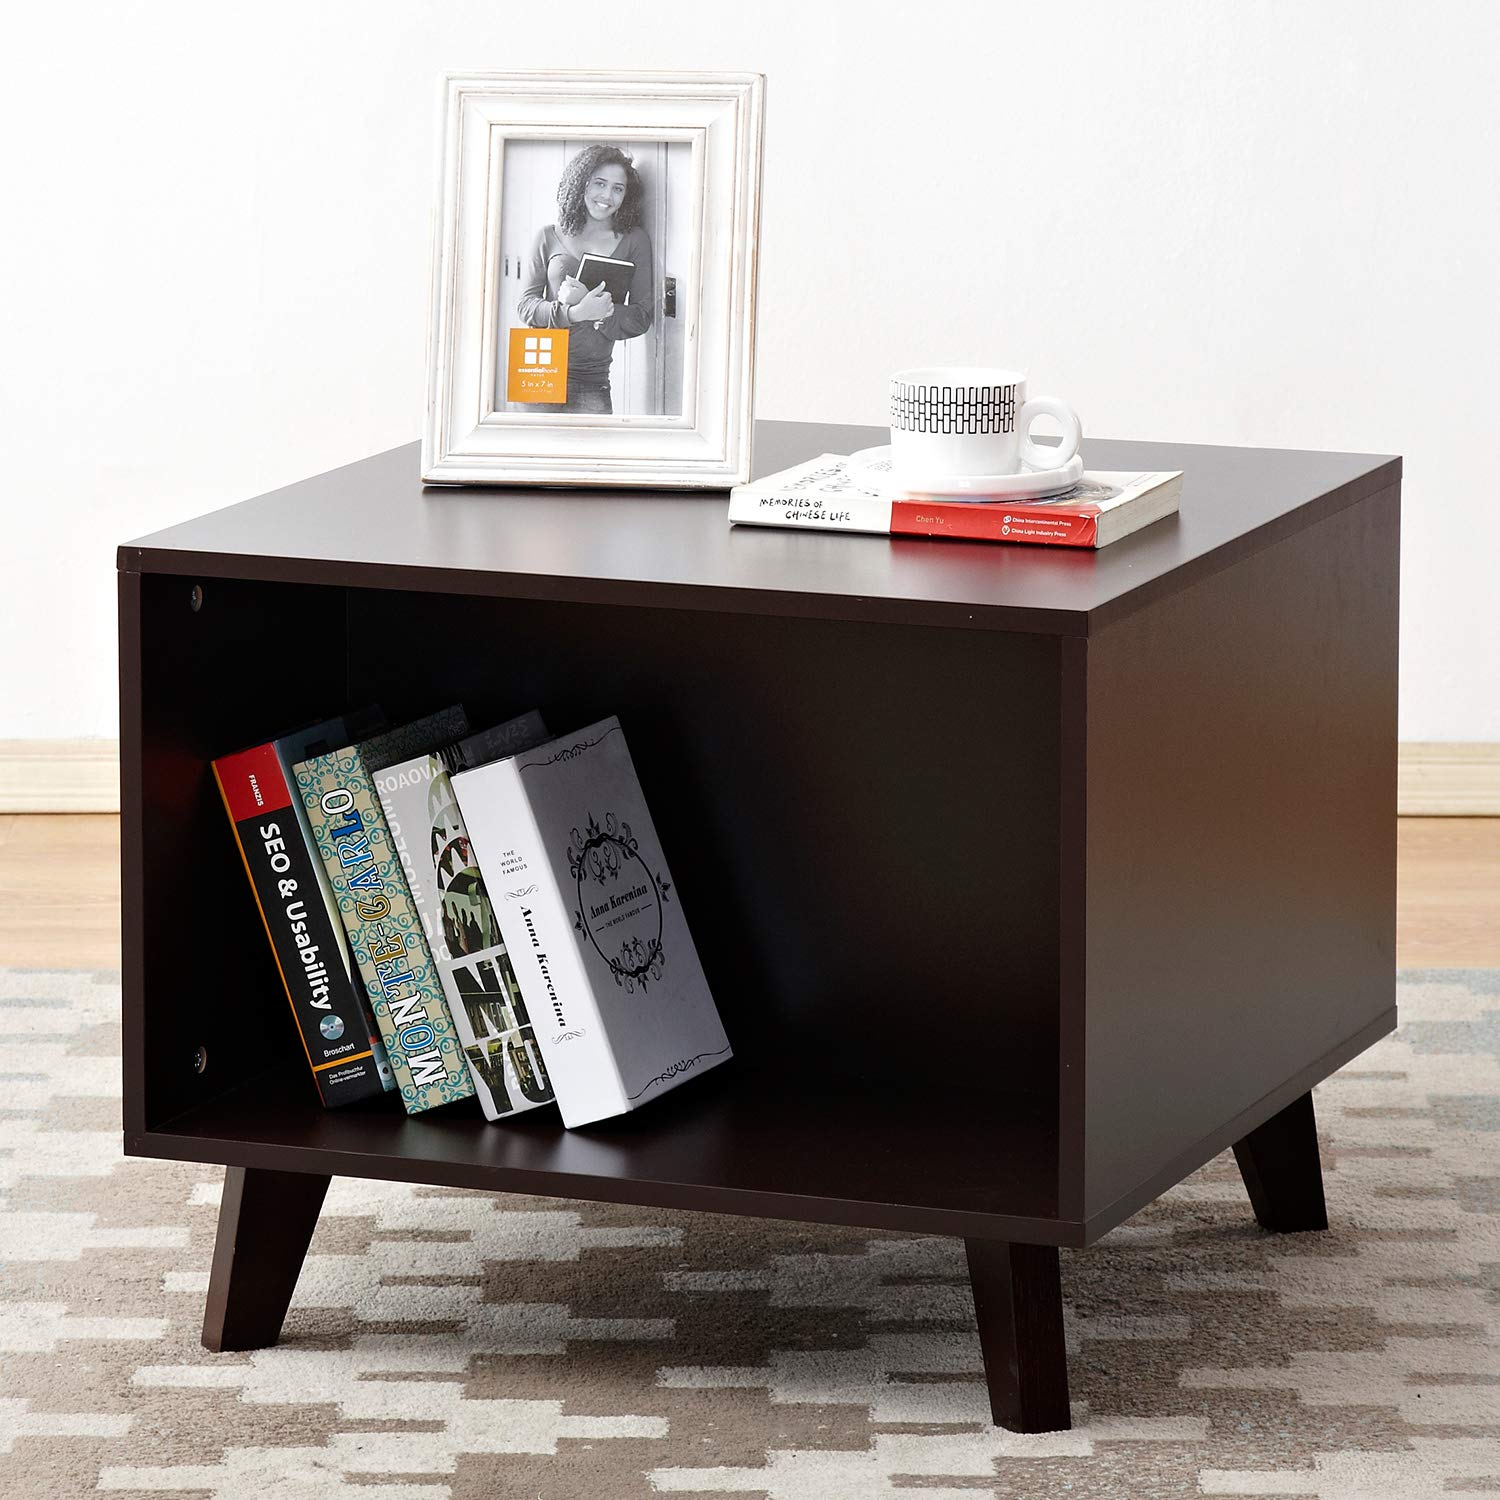 soges End Table 23.6 by 23.6 inch Night Stand Coffee Table Telephone Stand, Espresso HHCT002-CF